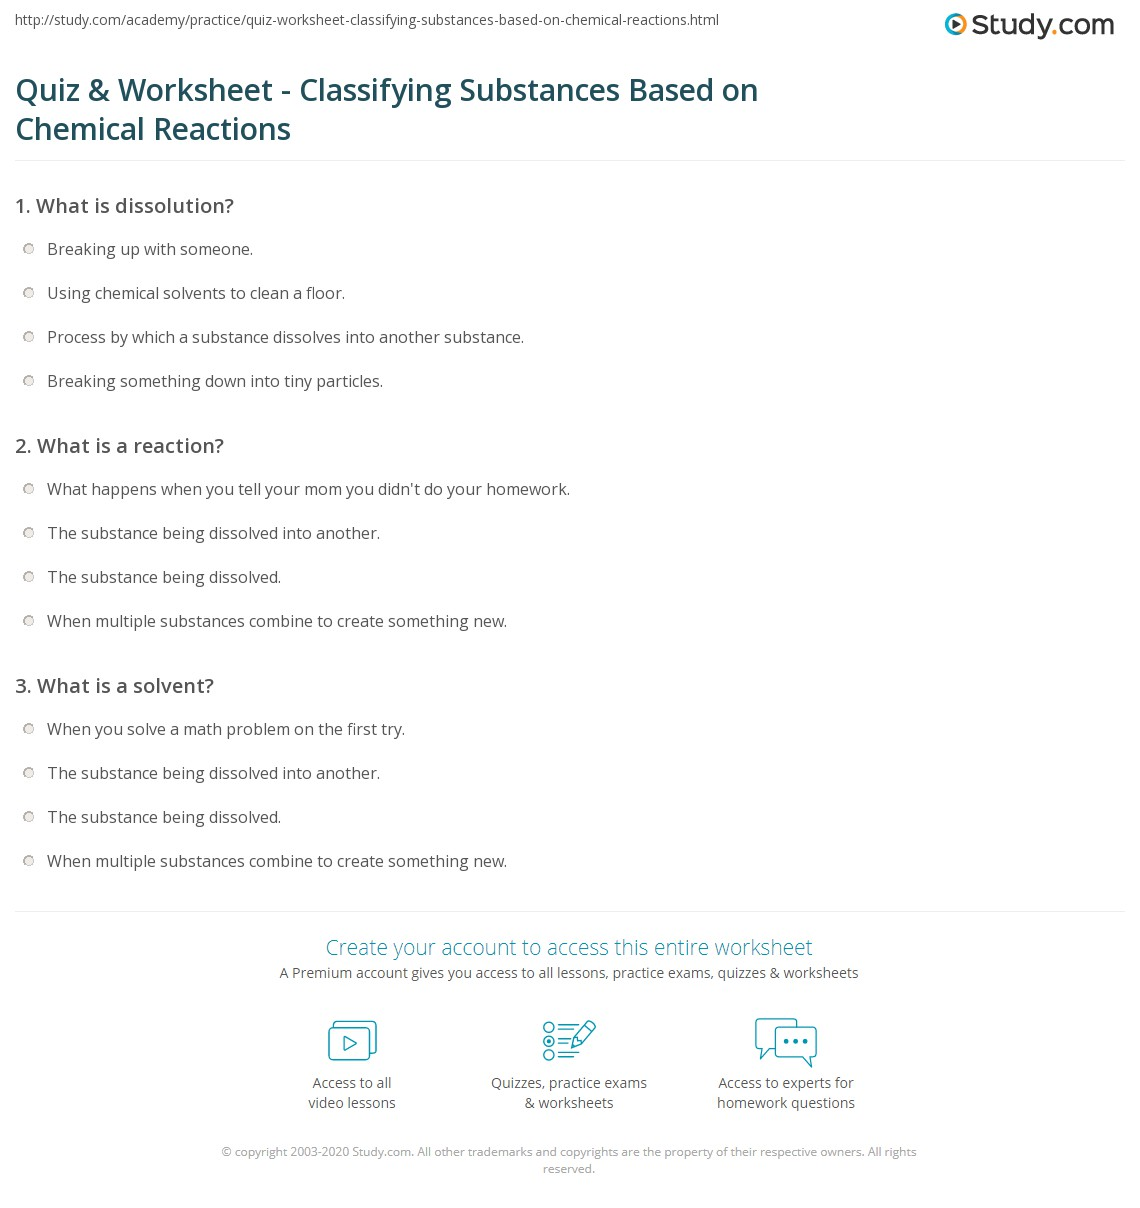 Printables Classifying Chemical Reactions Worksheet printables classifying chemical reactions worksheet quiz substances based on print using to